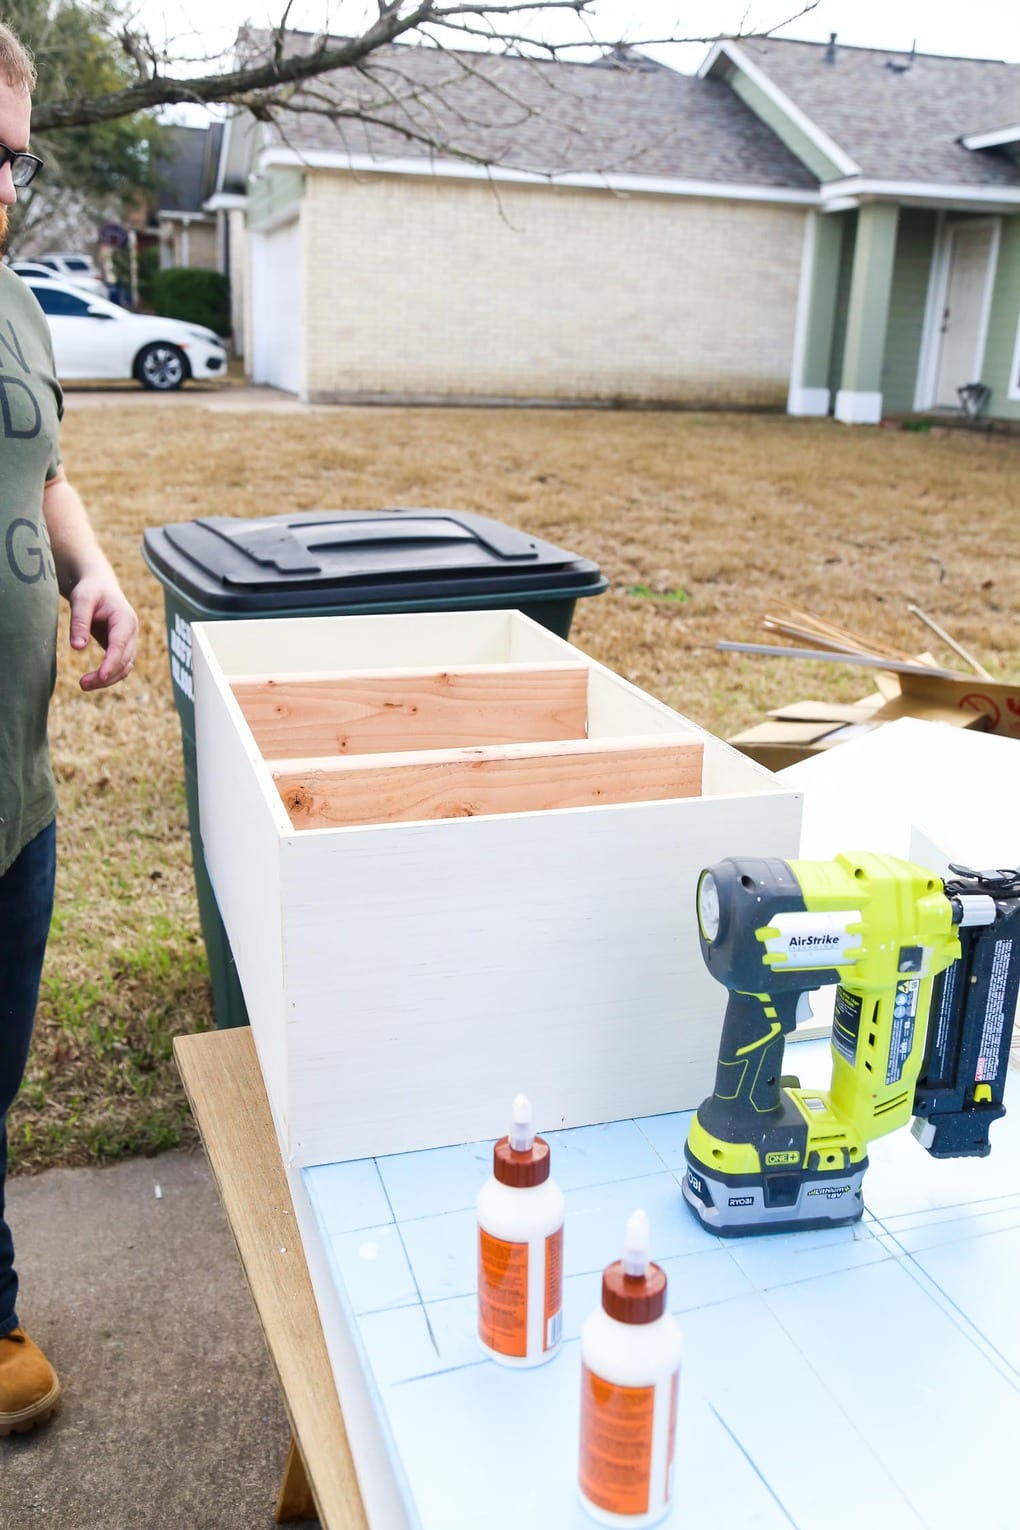 Plywood box being built outdoors